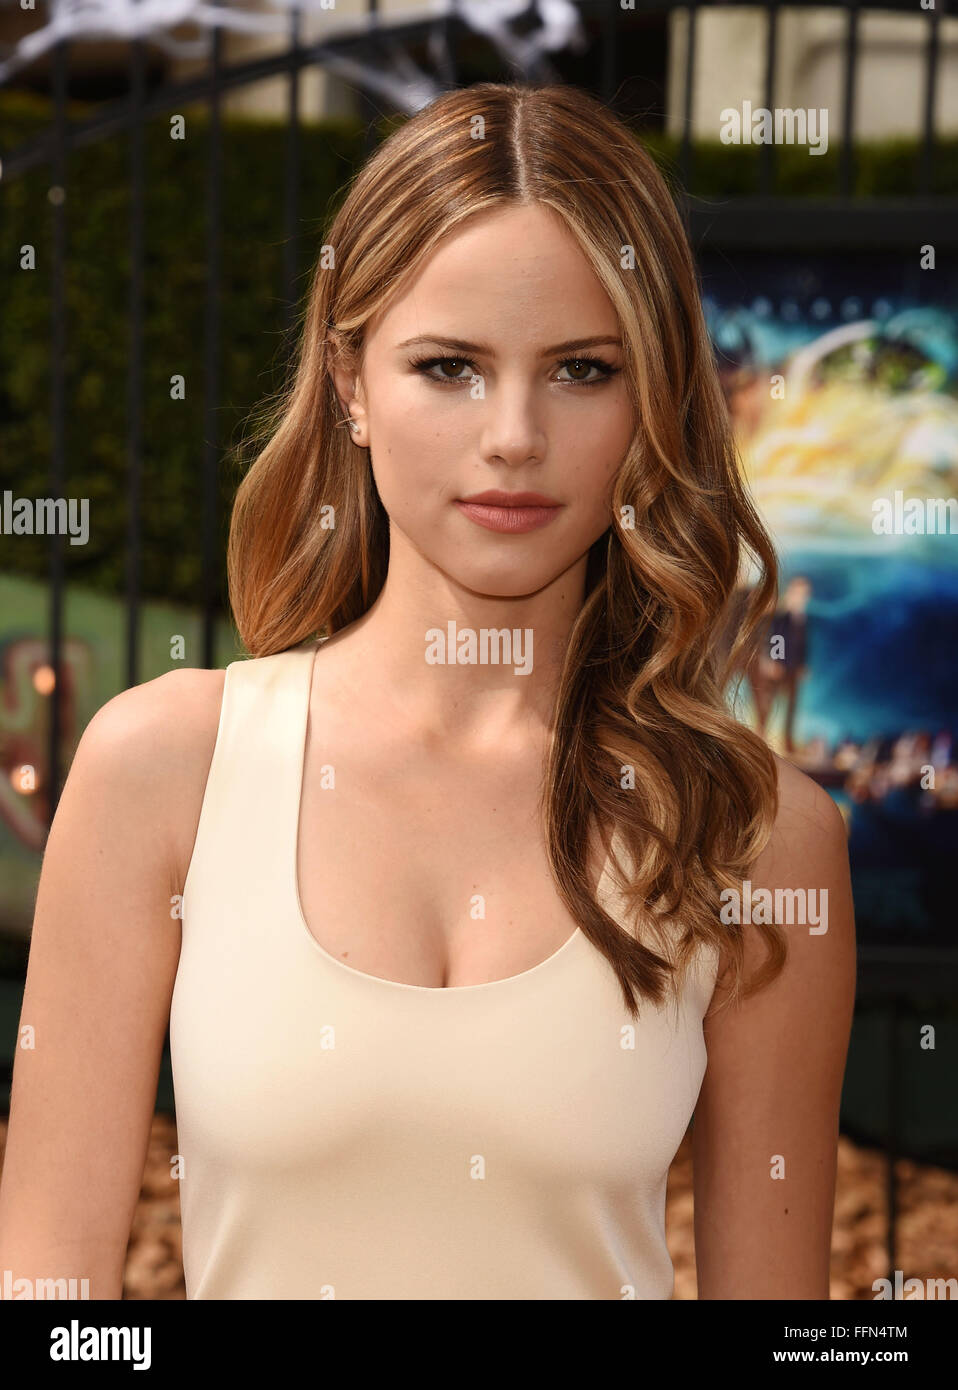 Actress Halston Sage attends the Premiere Of Sony Entertainment's 'Goosebumps' at the Regency Village - Stock Image